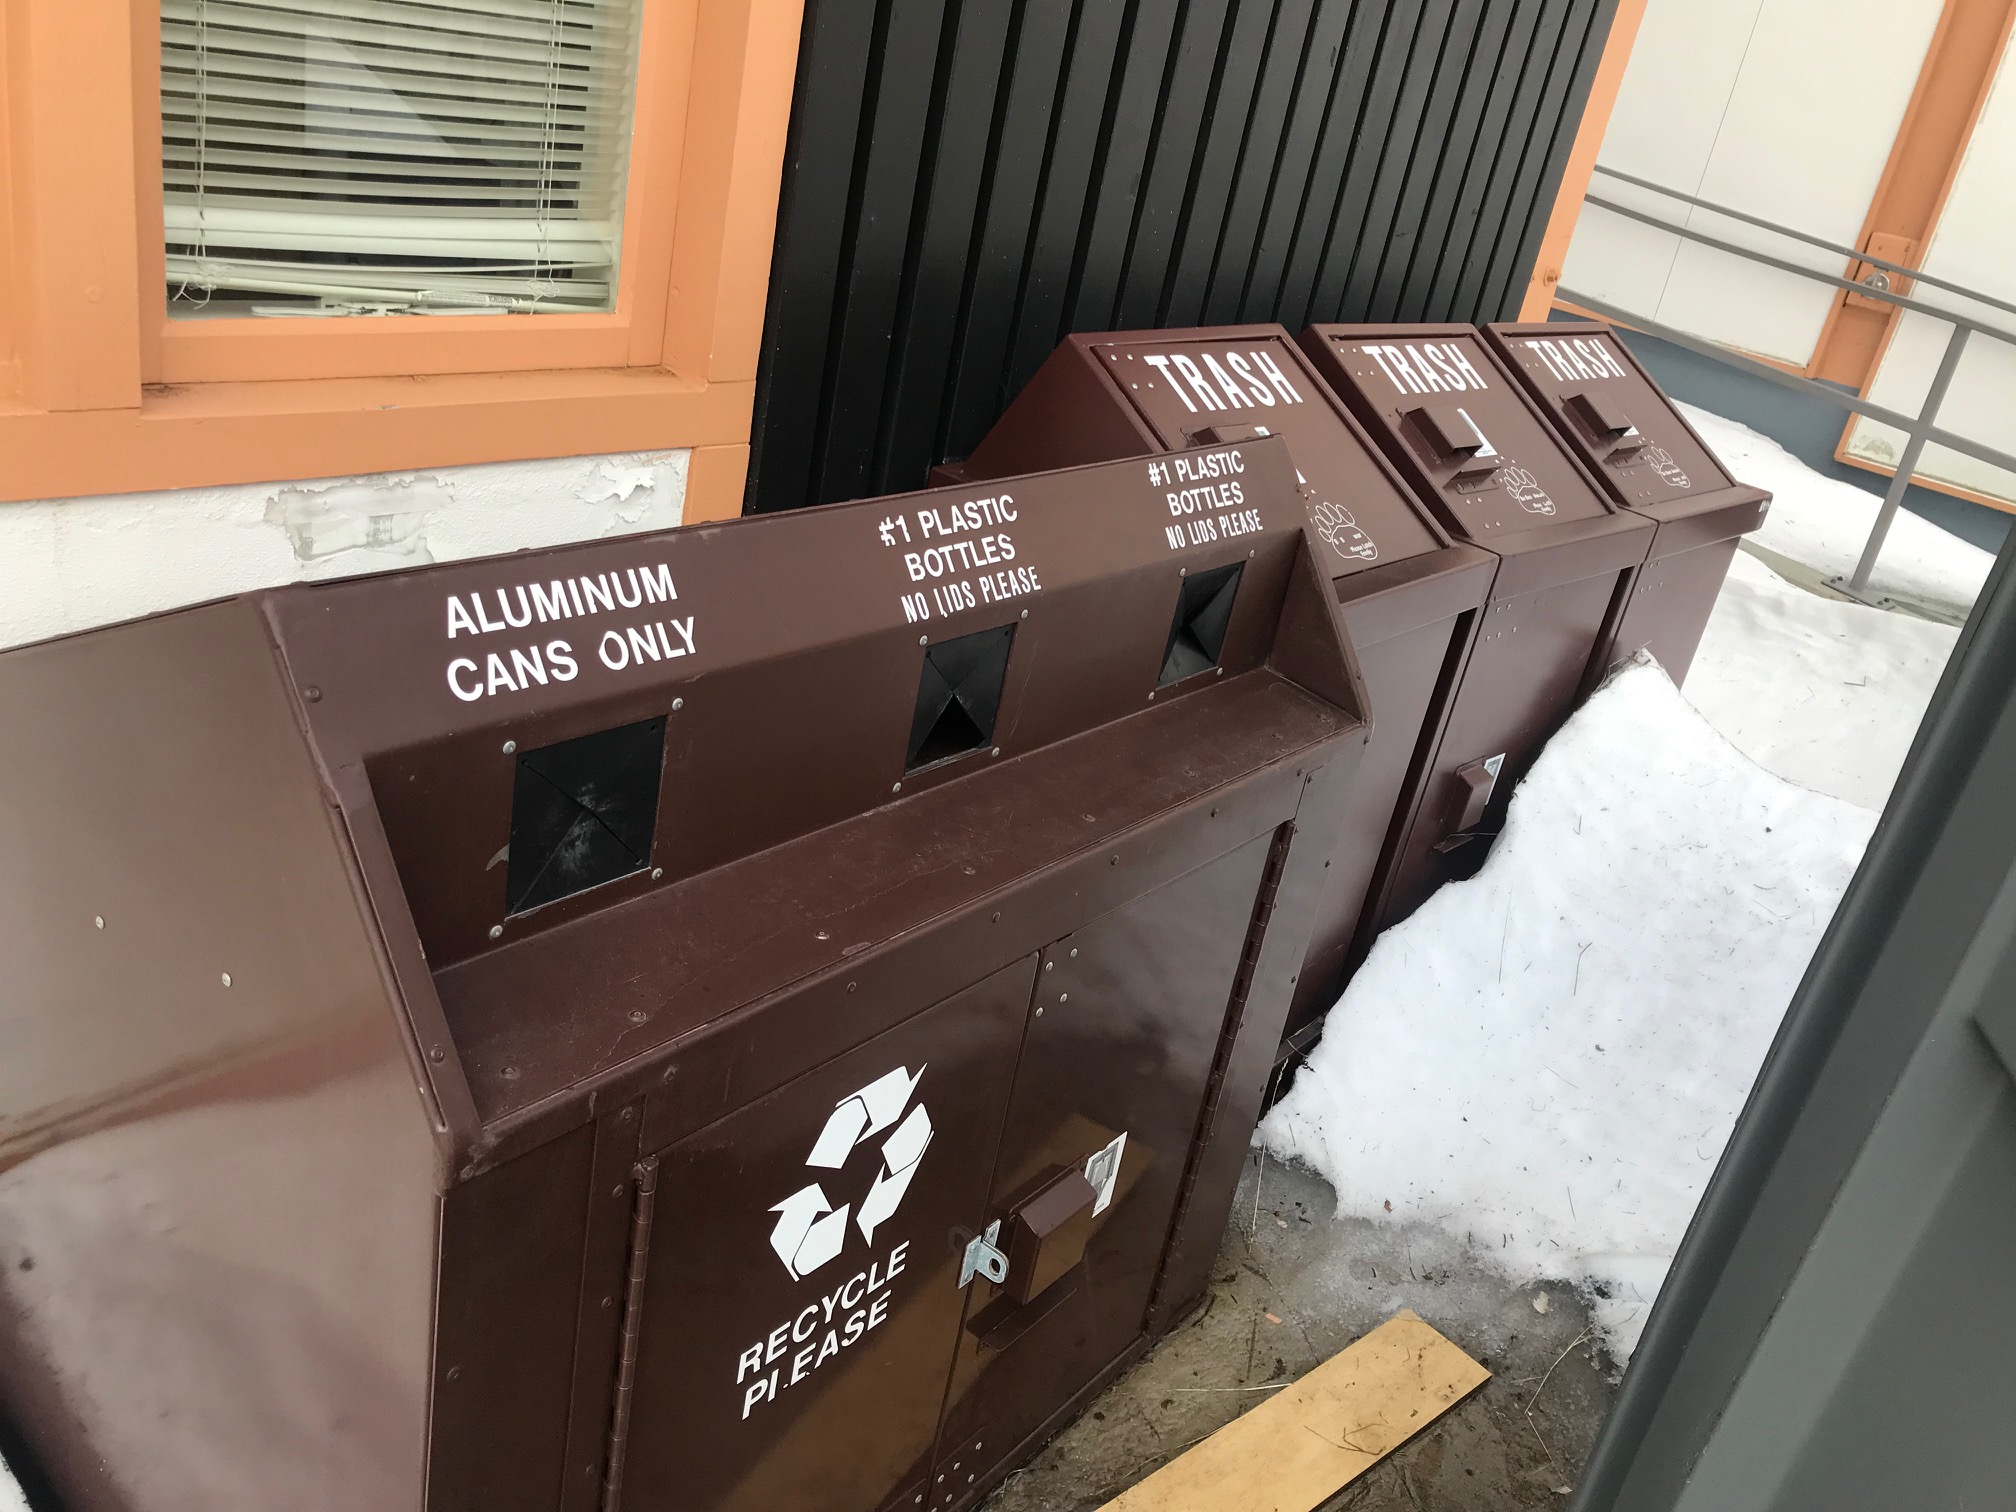 The trash and recycling were all nearly empty, so we left them as they were.